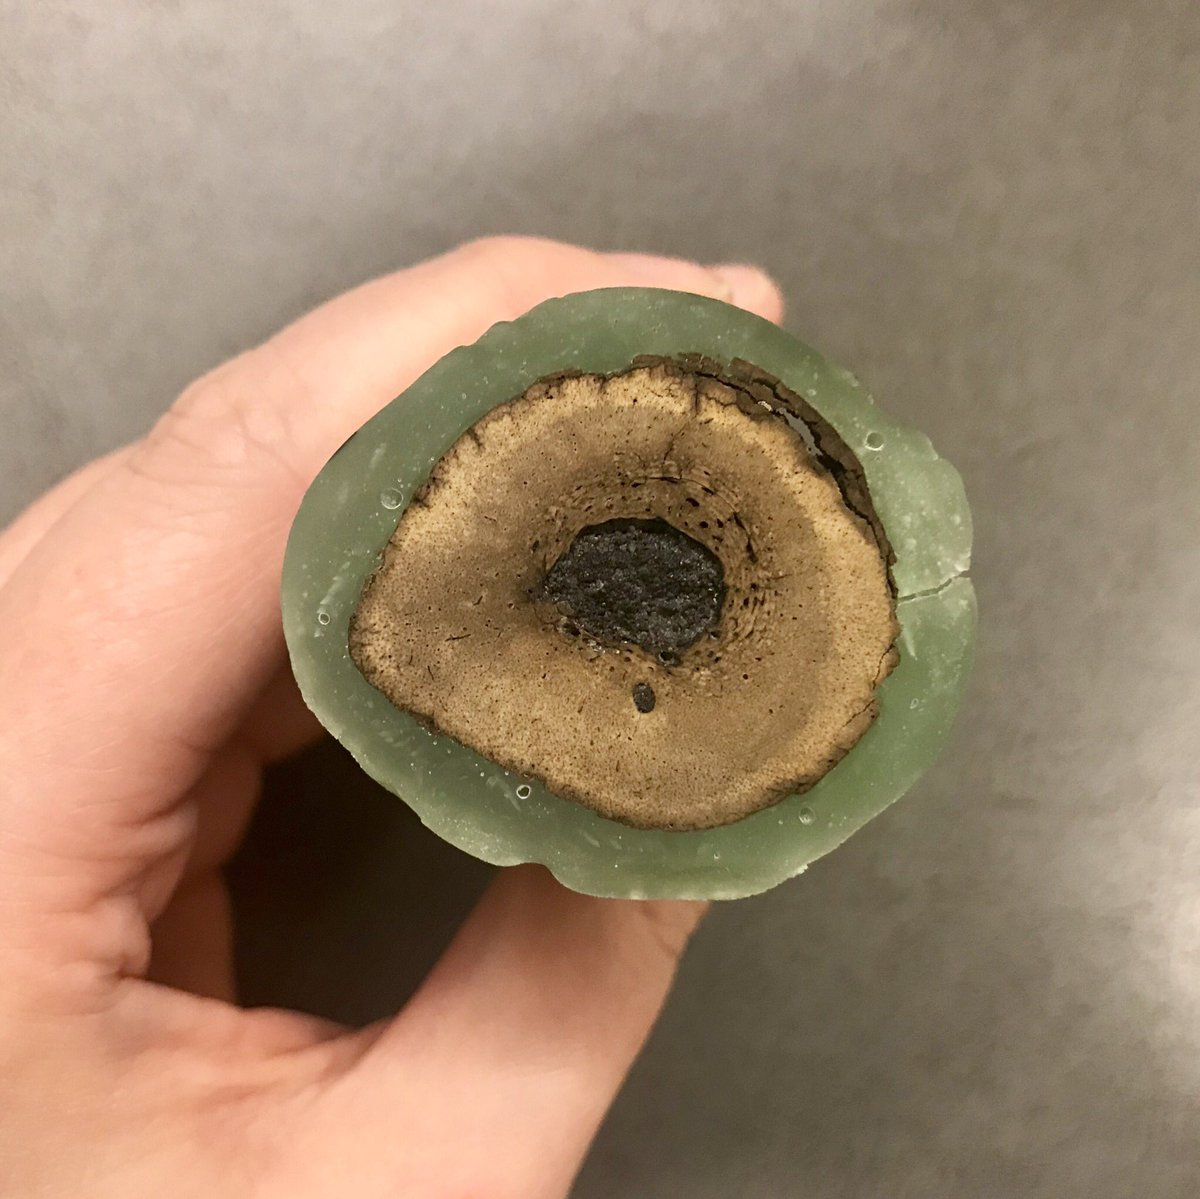 Here&#39;s a Smilodon femur waiting (very patiently) for me to glue it to a plexiglass slide.   Once the glue dries, I&#39;ll cut it again and start grinding down the thin section until it&#39;s thin enough that light can pass through to illuminate the bone&#39;s microstructure! #FossilFriday <br>http://pic.twitter.com/AkMmGFy0Cc